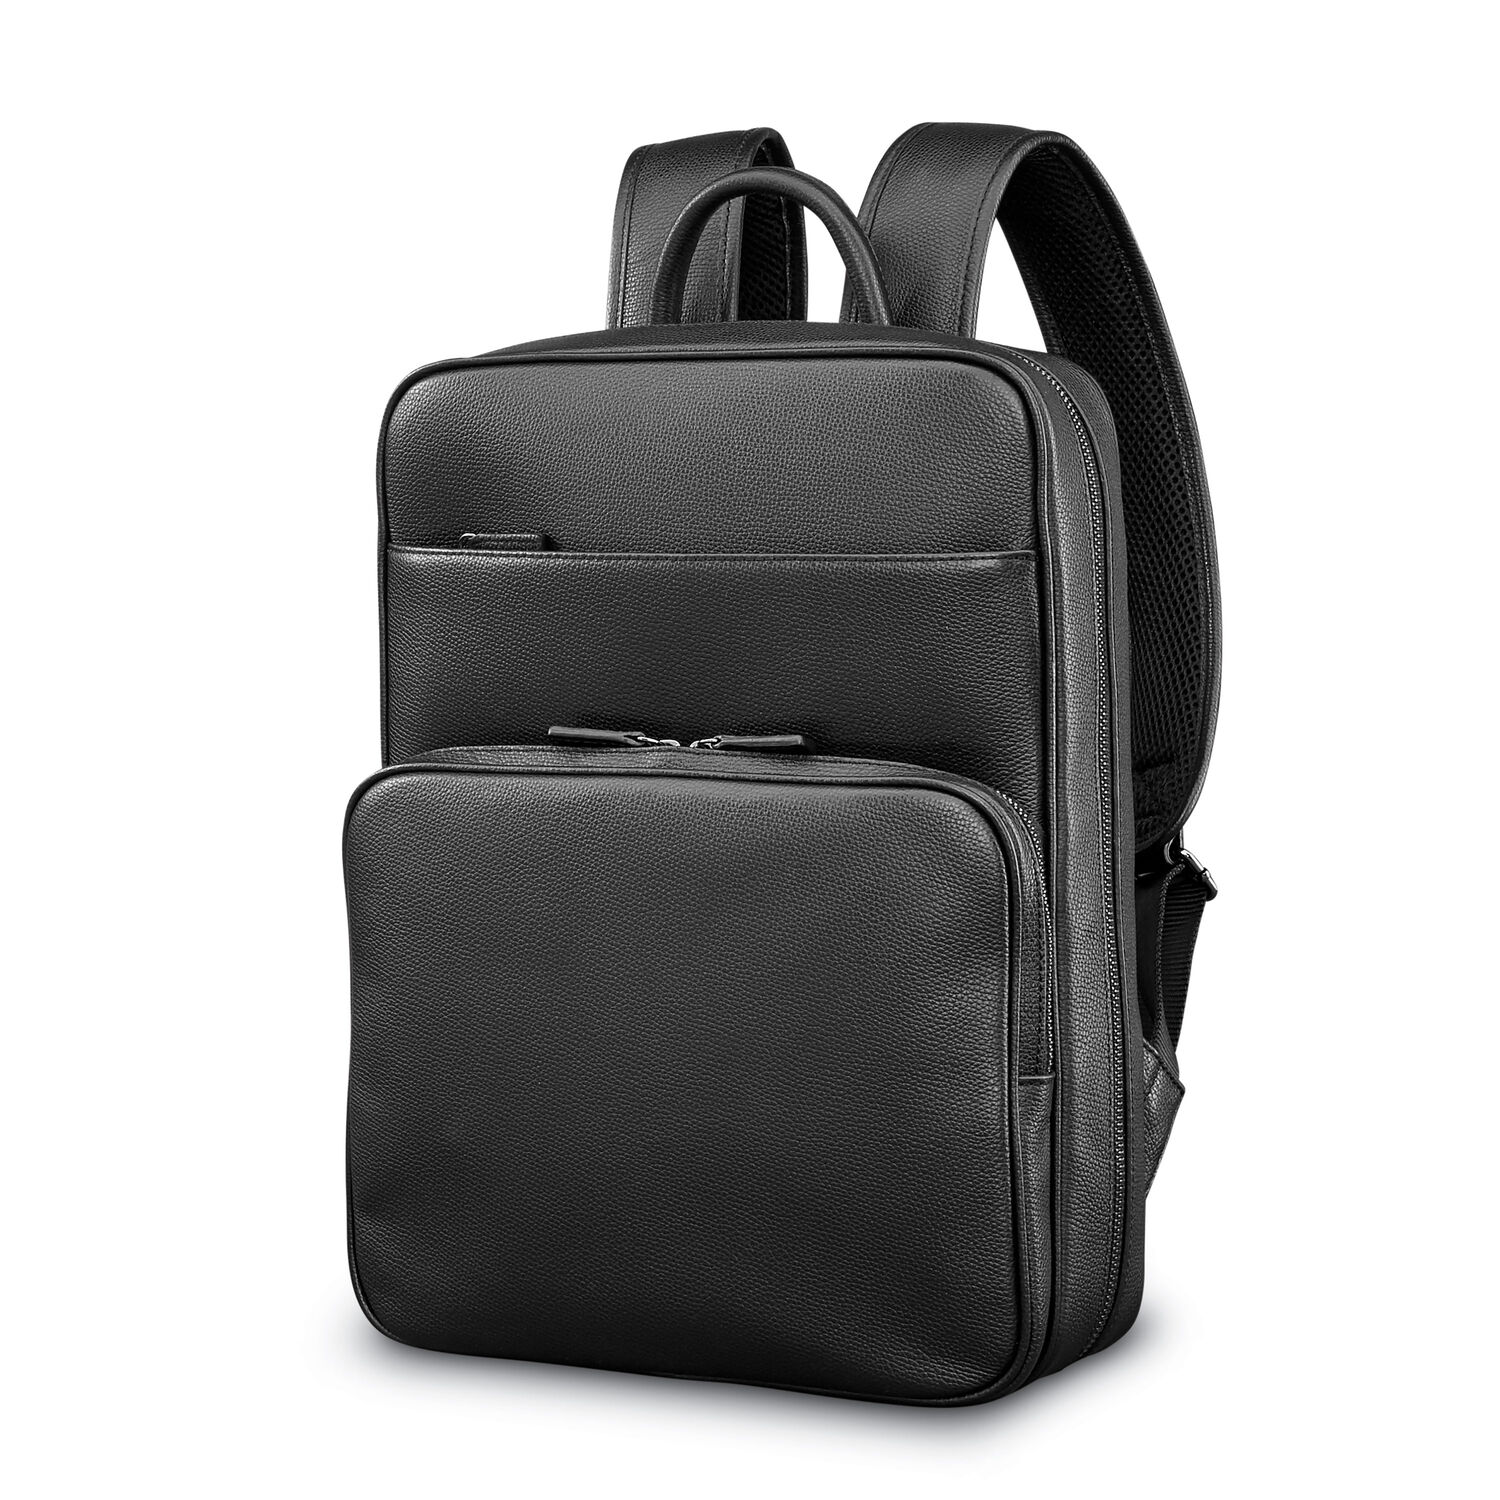 273a4531dd5 Samsonite Mens Leather Classic Slim Backpack in the color Black.